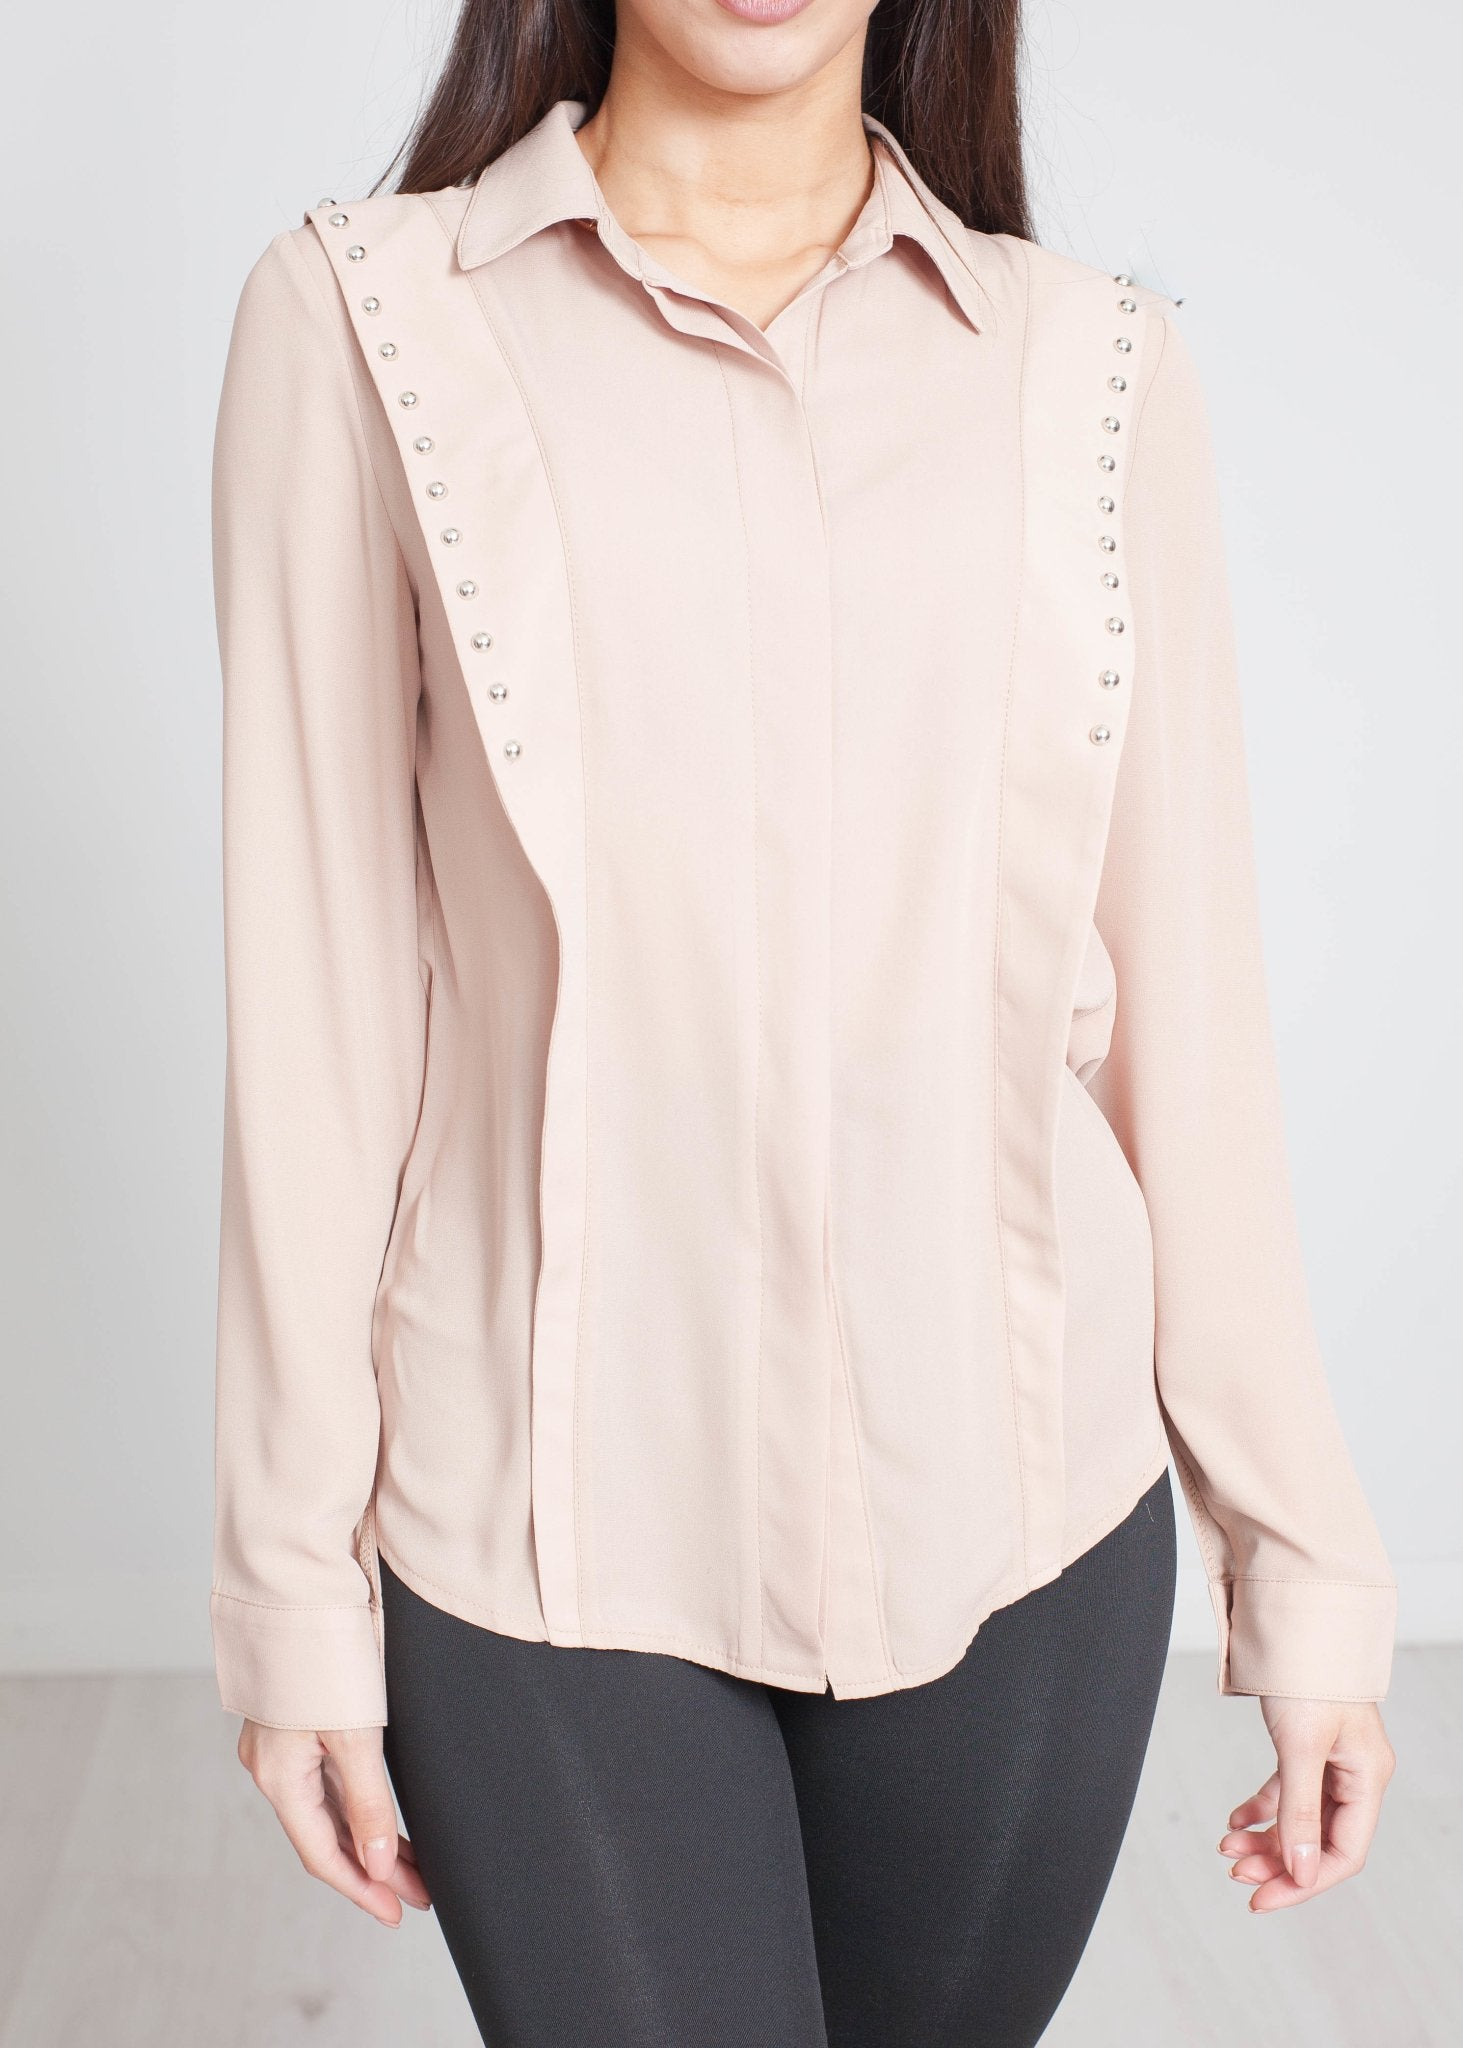 Scarlet Studded Shirt In Tan - The Walk in Wardrobe